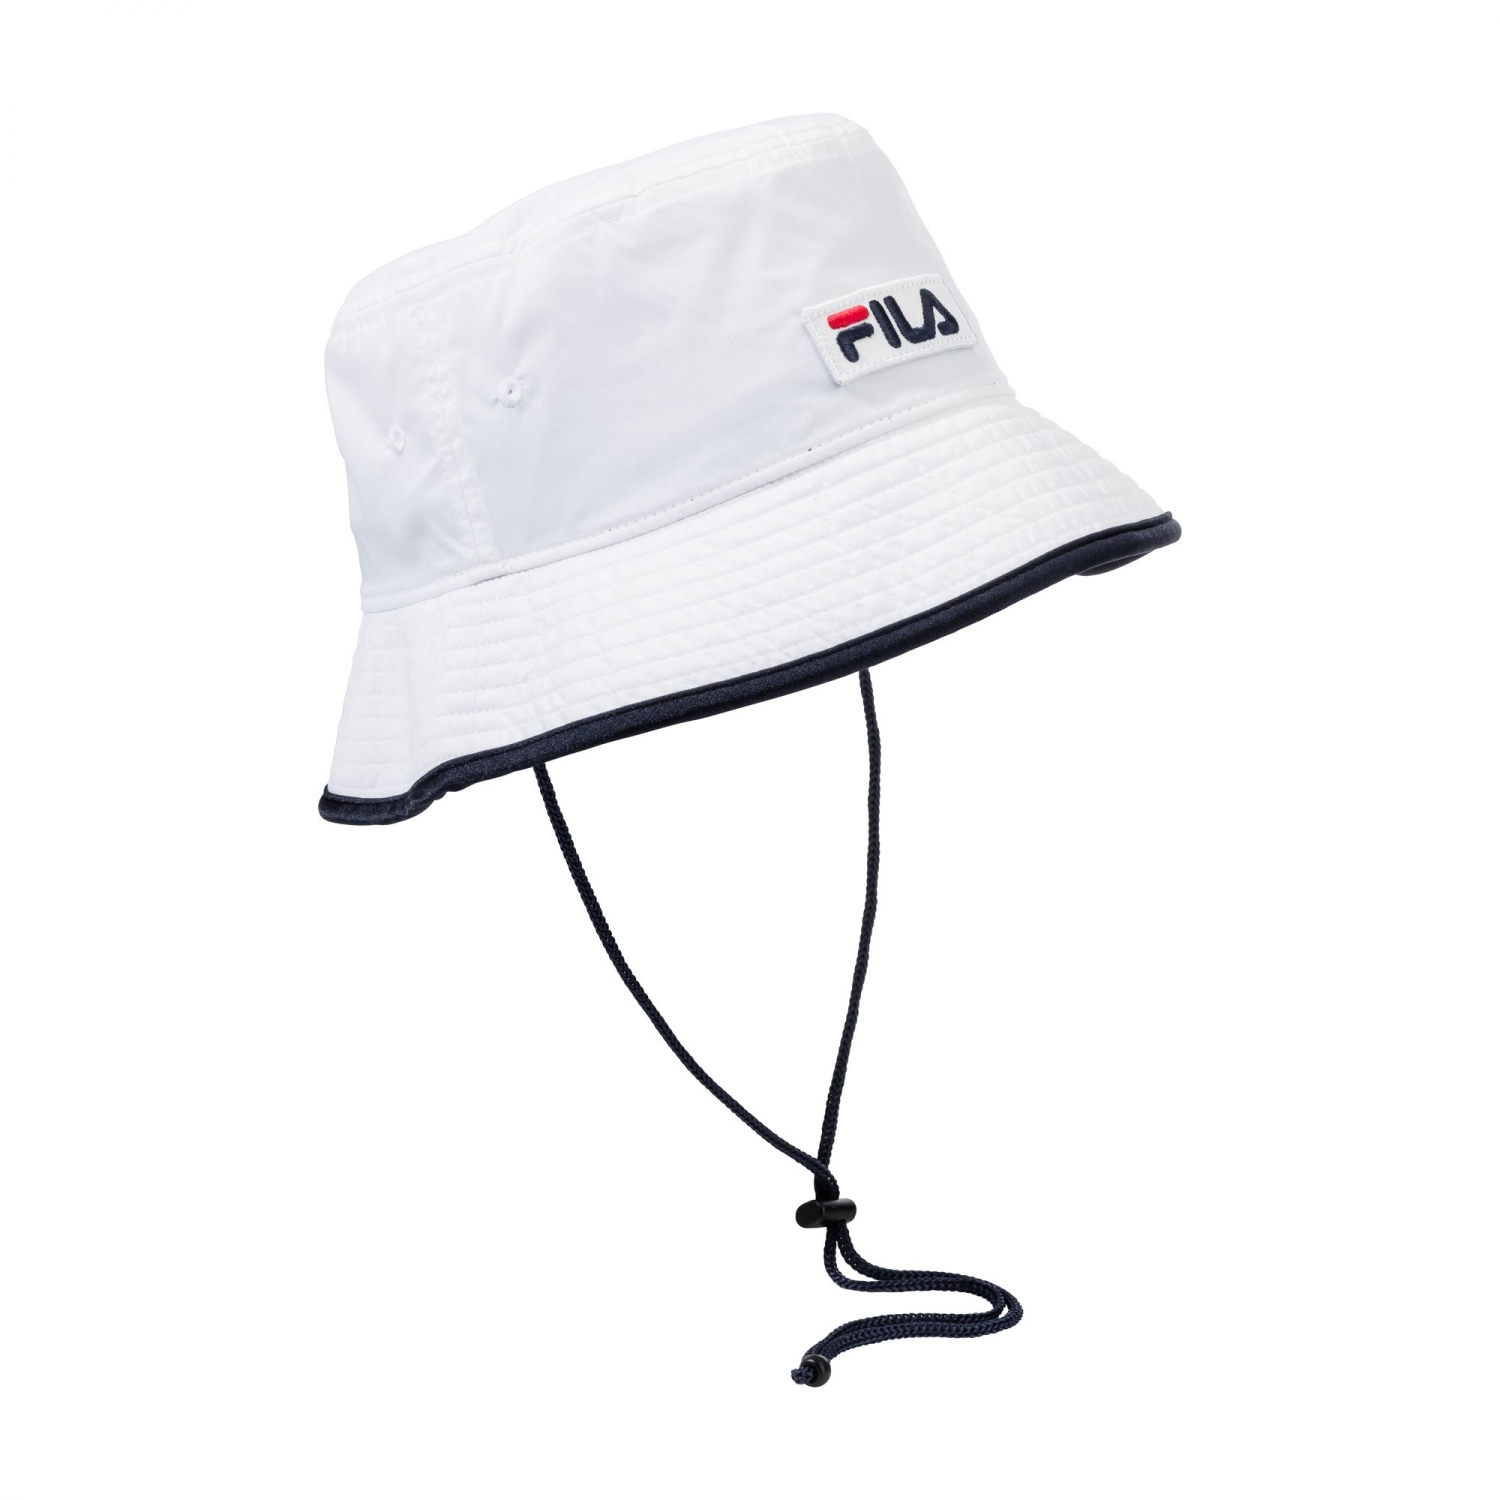 b799f11d34d63 Fila - Sail Bucket Hat - 00014201701857 - white